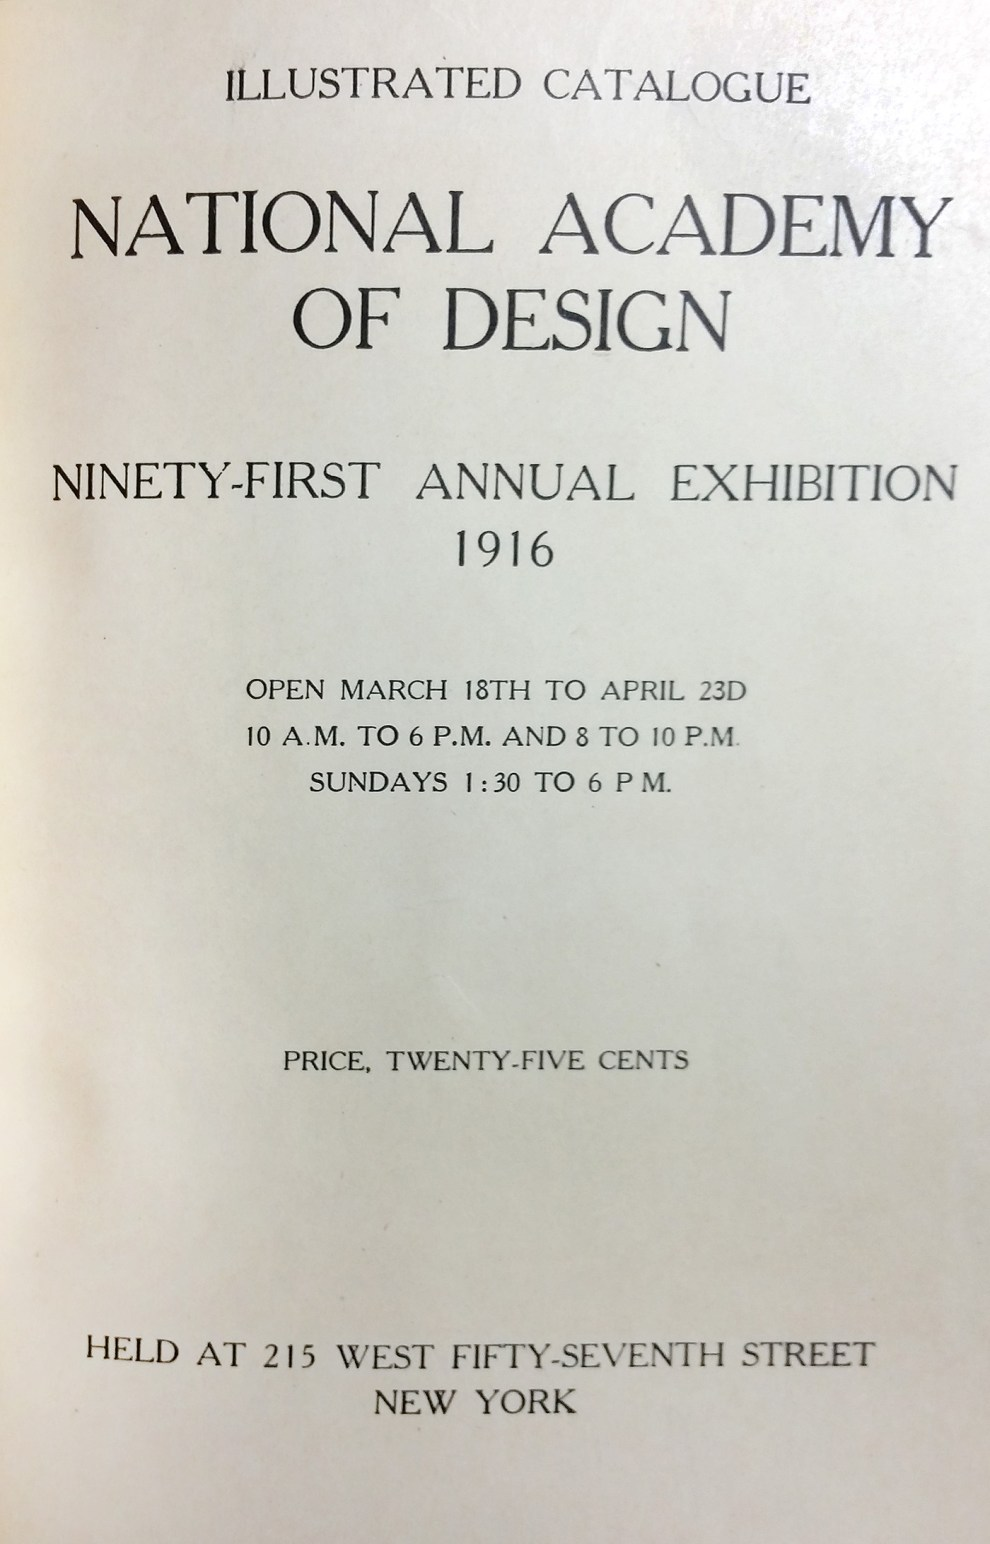 """1916 National Academy of Design, New York, NY, """"Ninety-First Annual Exhibition"""", March 18 - April 23"""